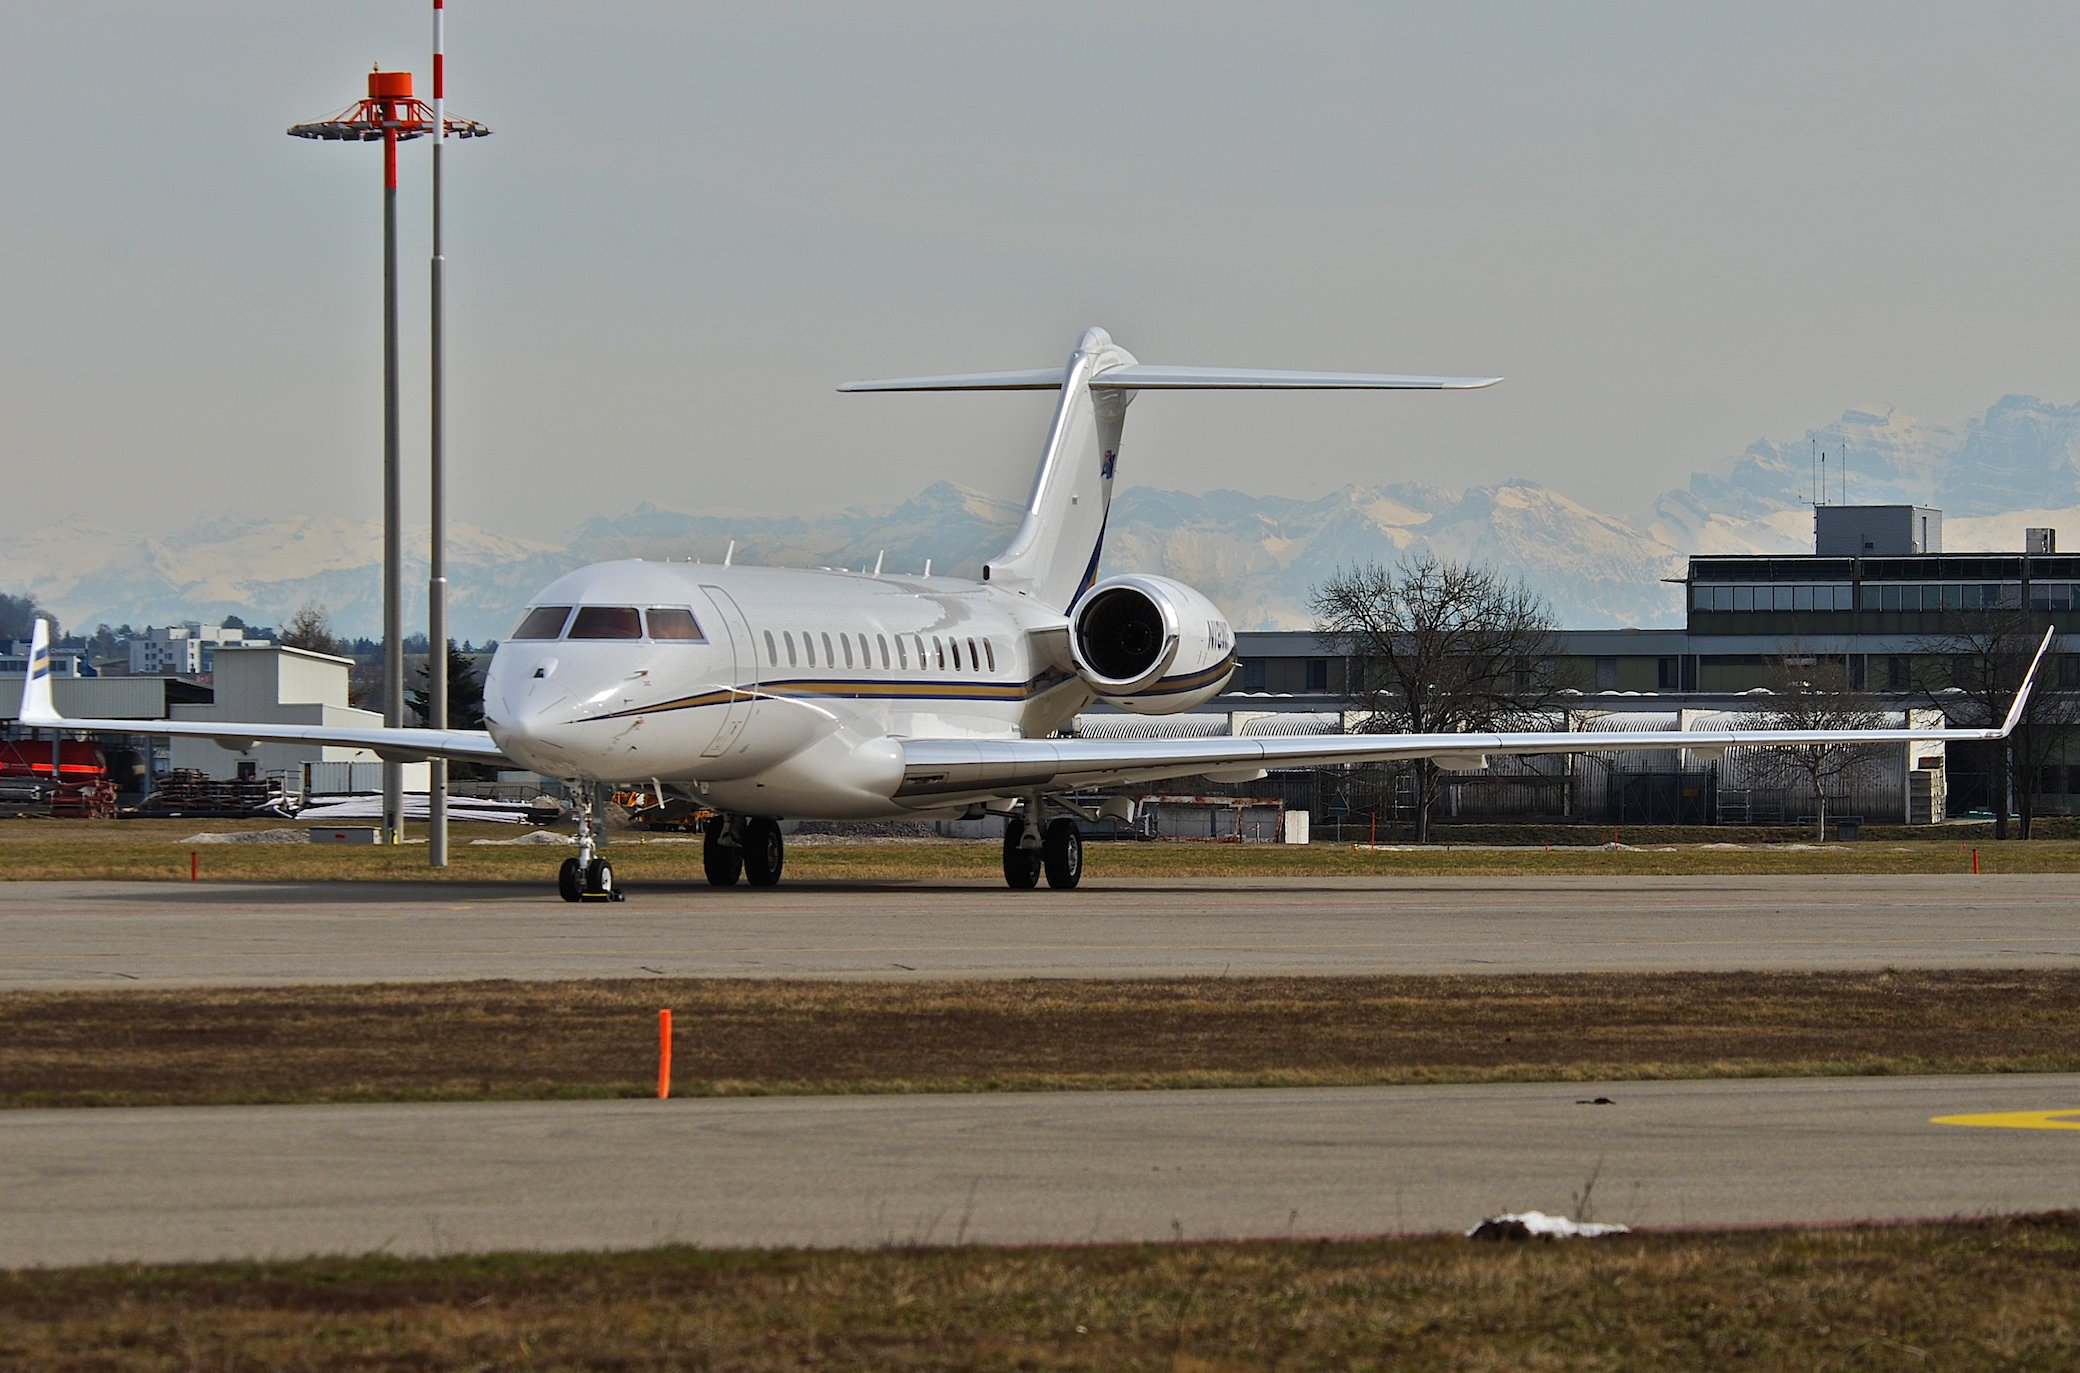 Untitled (Westfield Aviation) Bombardier BD-700-1A10 Global Express; N18WF@ZRH;18.03.2010 par Aero Icarus sous (CC BY-SA 2.0) https://www.flickr.com/photos/aero_icarus/4444300616/